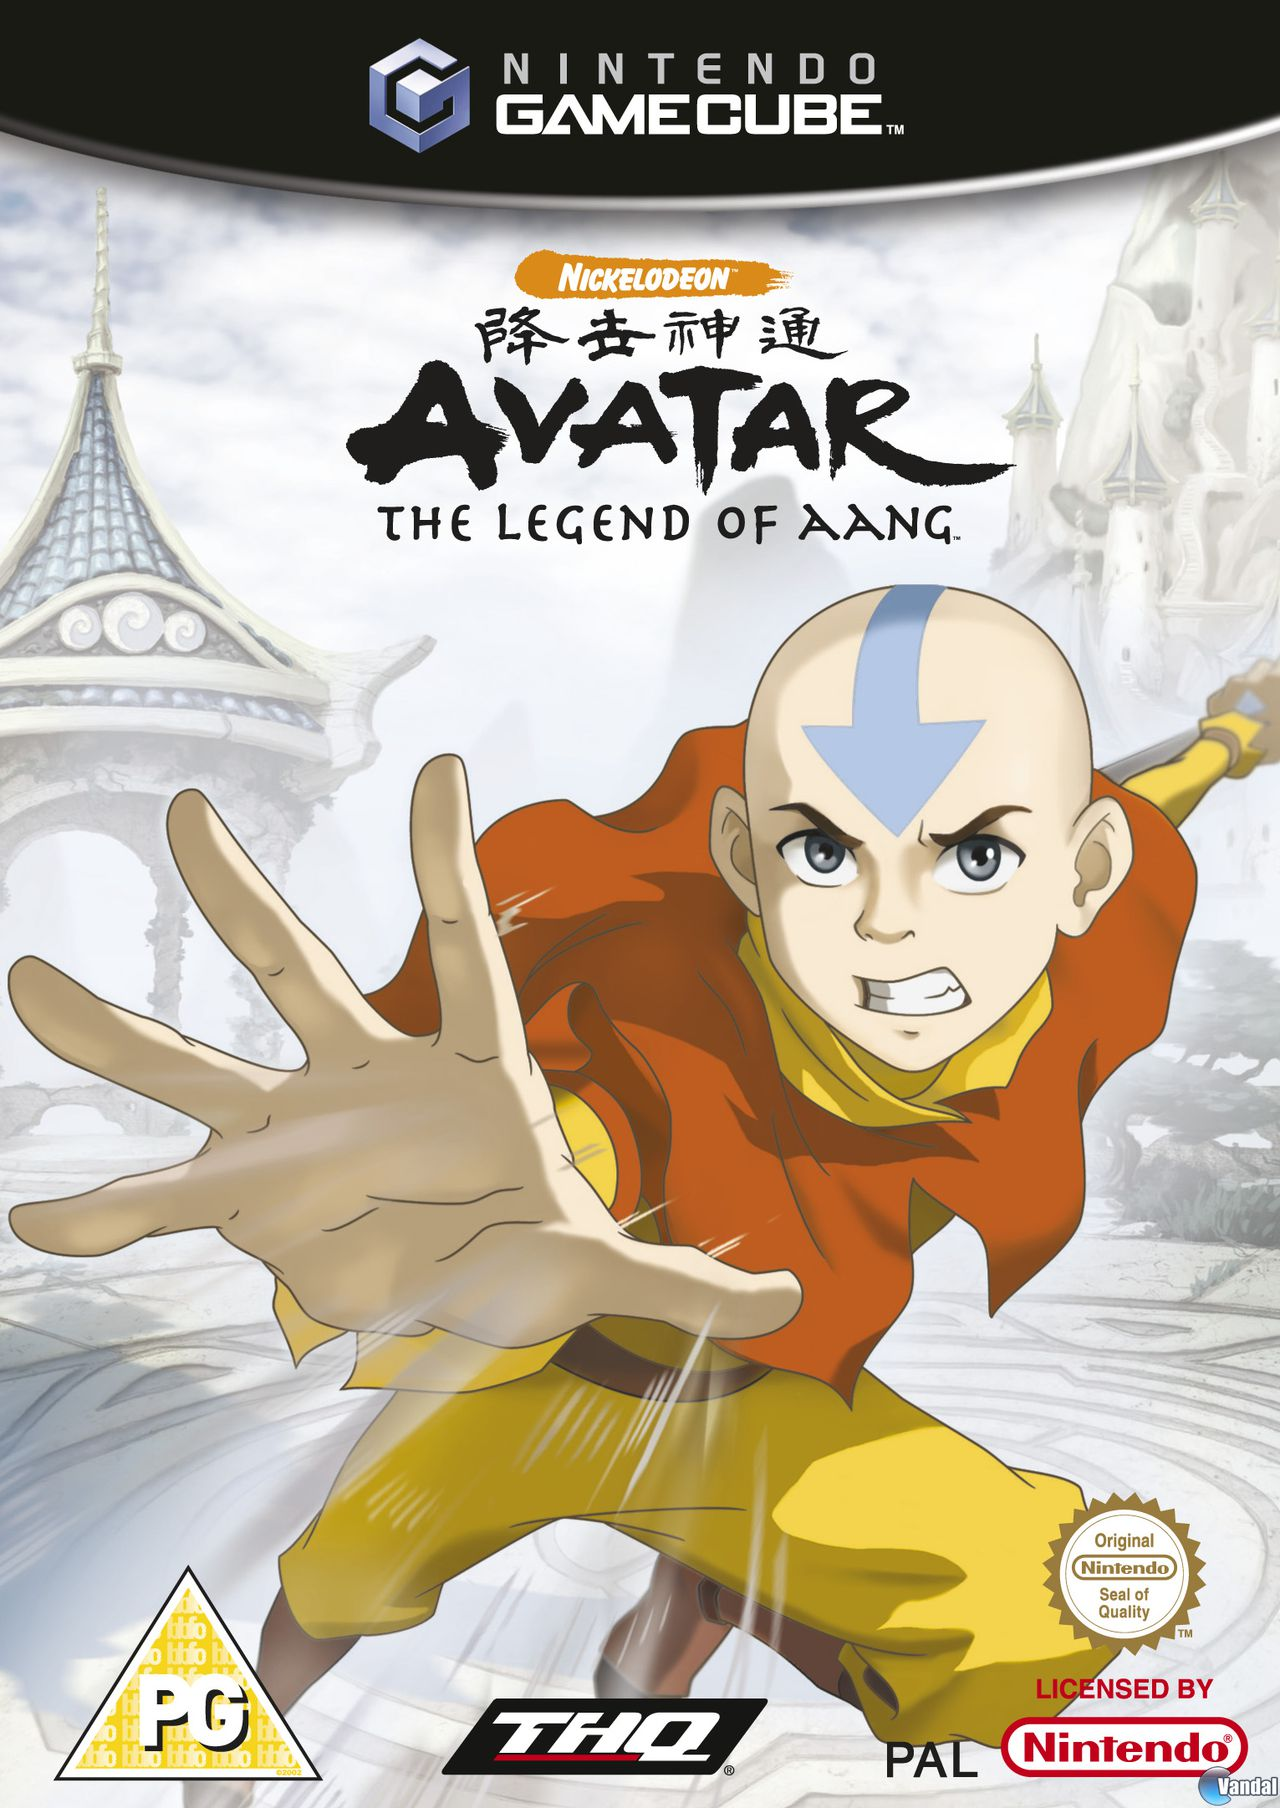 Rom juego Nickelodeon Avatar The Legend Of Aang